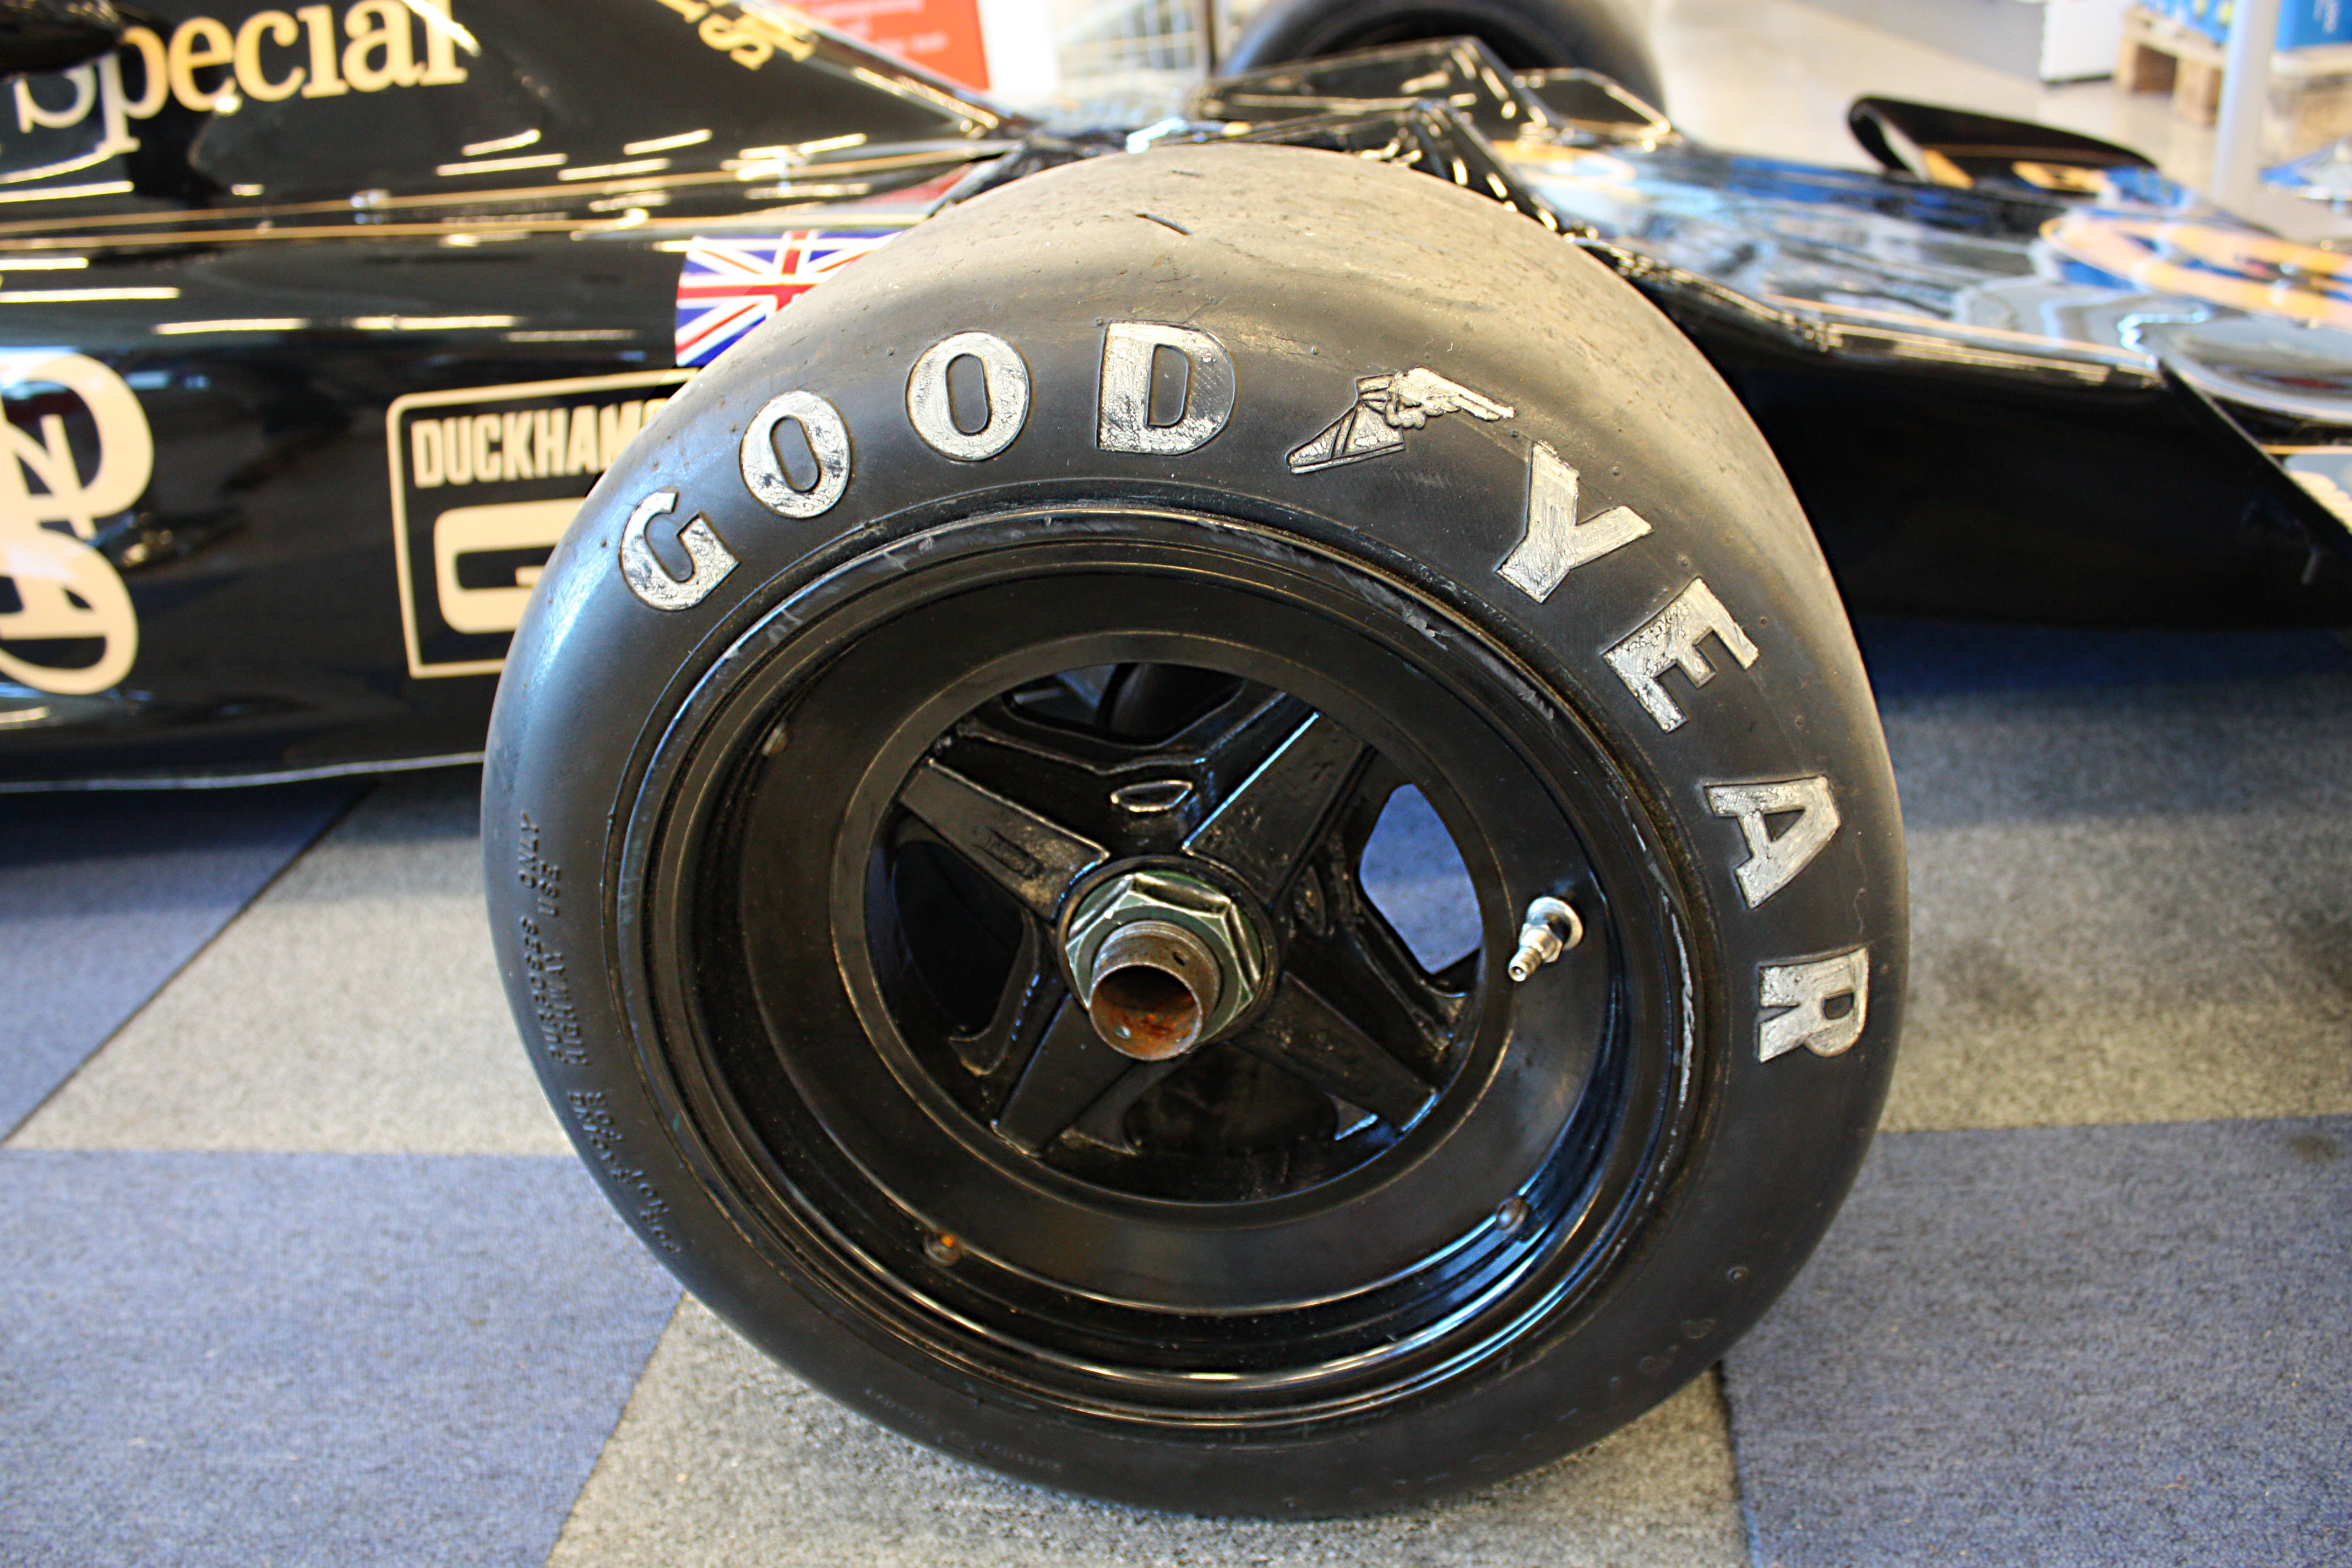 JPS Lotus 72 - Goodyear tyre - Ronnie Petersons F1 car | Flickr ...